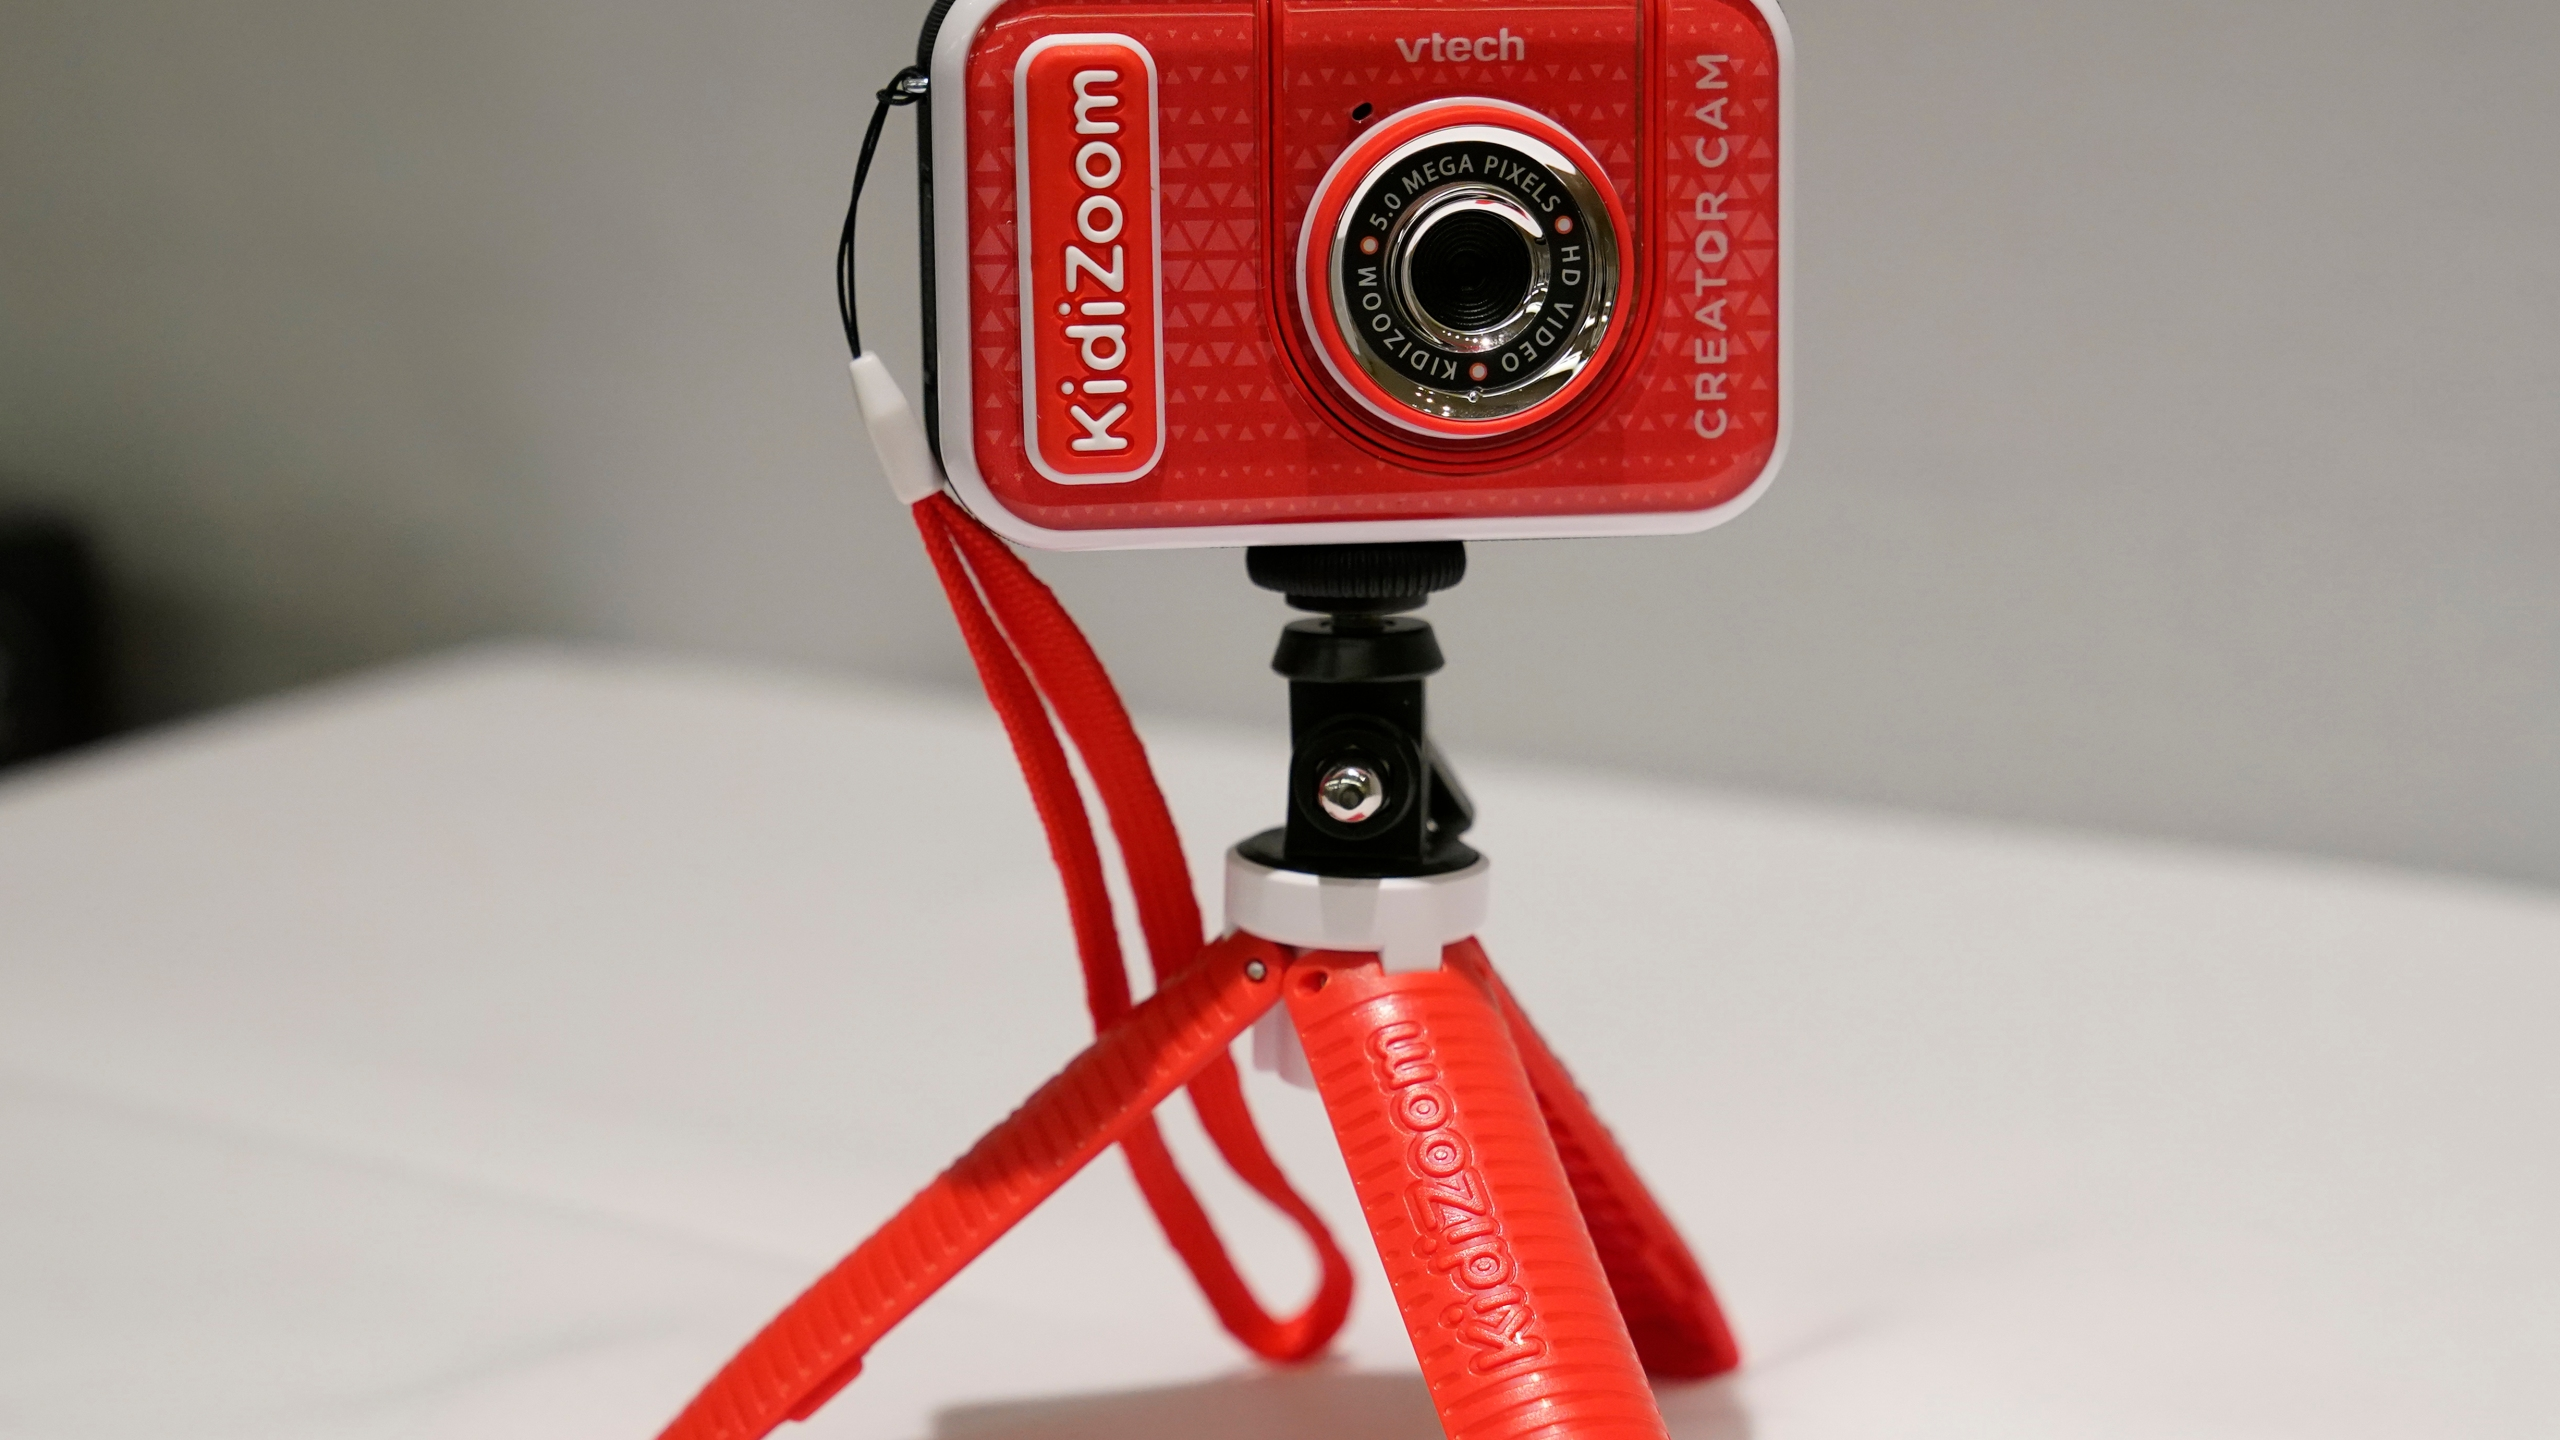 A KidiZoom Creator Cam by VTech is displayed at the Toy Fair in New York on Sept. 17, 2020. (Kathy Willens / Associated Press)